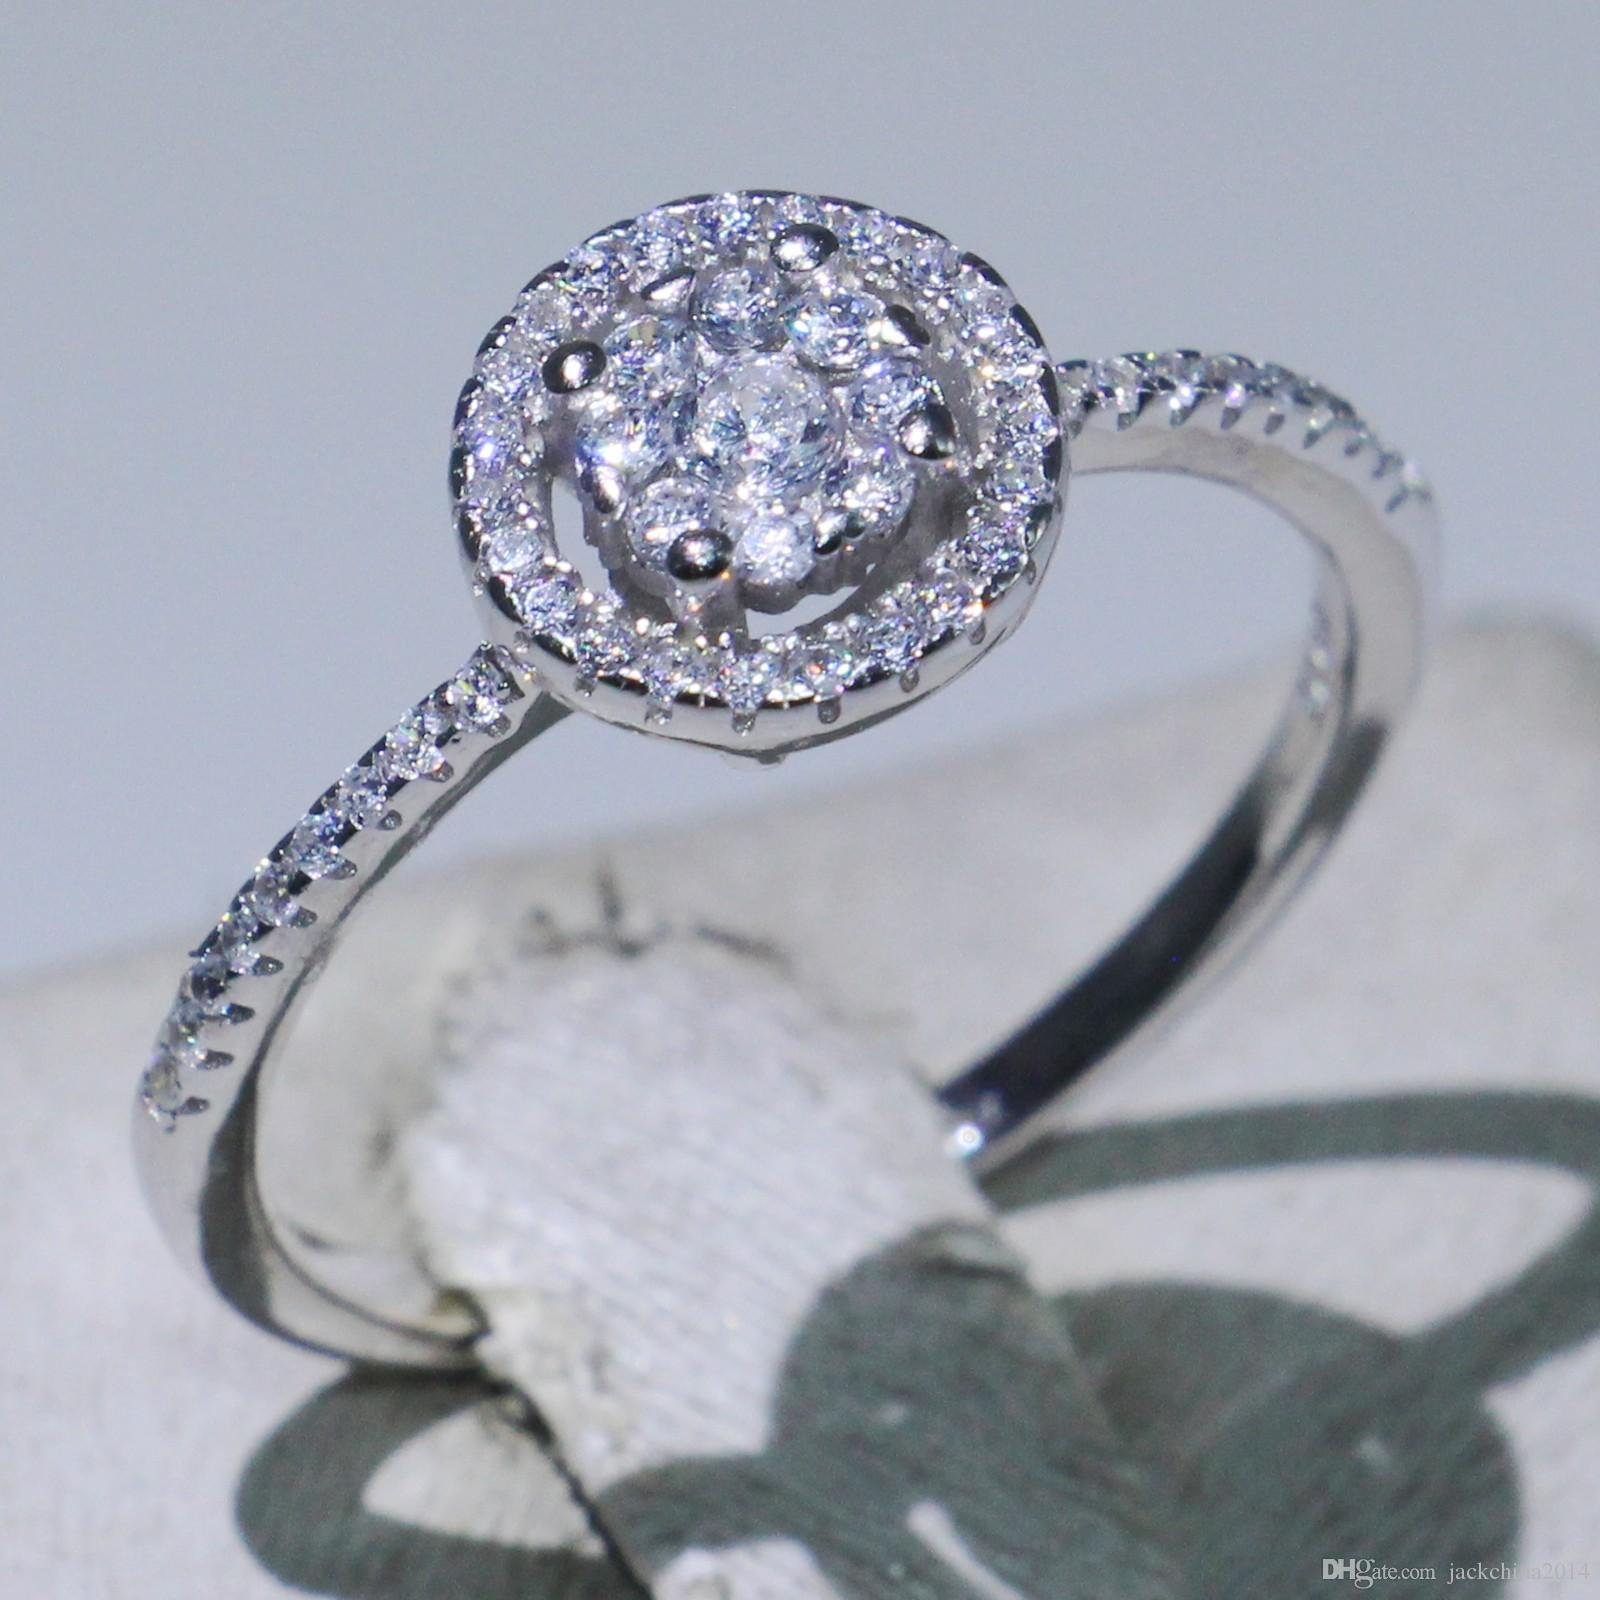 1d4113820 2019 Clsssical Brand New Choucong Promise Ring Luxury Jewelry Pure 100% 925  Sterling Silver Pave White Sapphire CZ Diamond Wedding Band Ring Gift From  ...